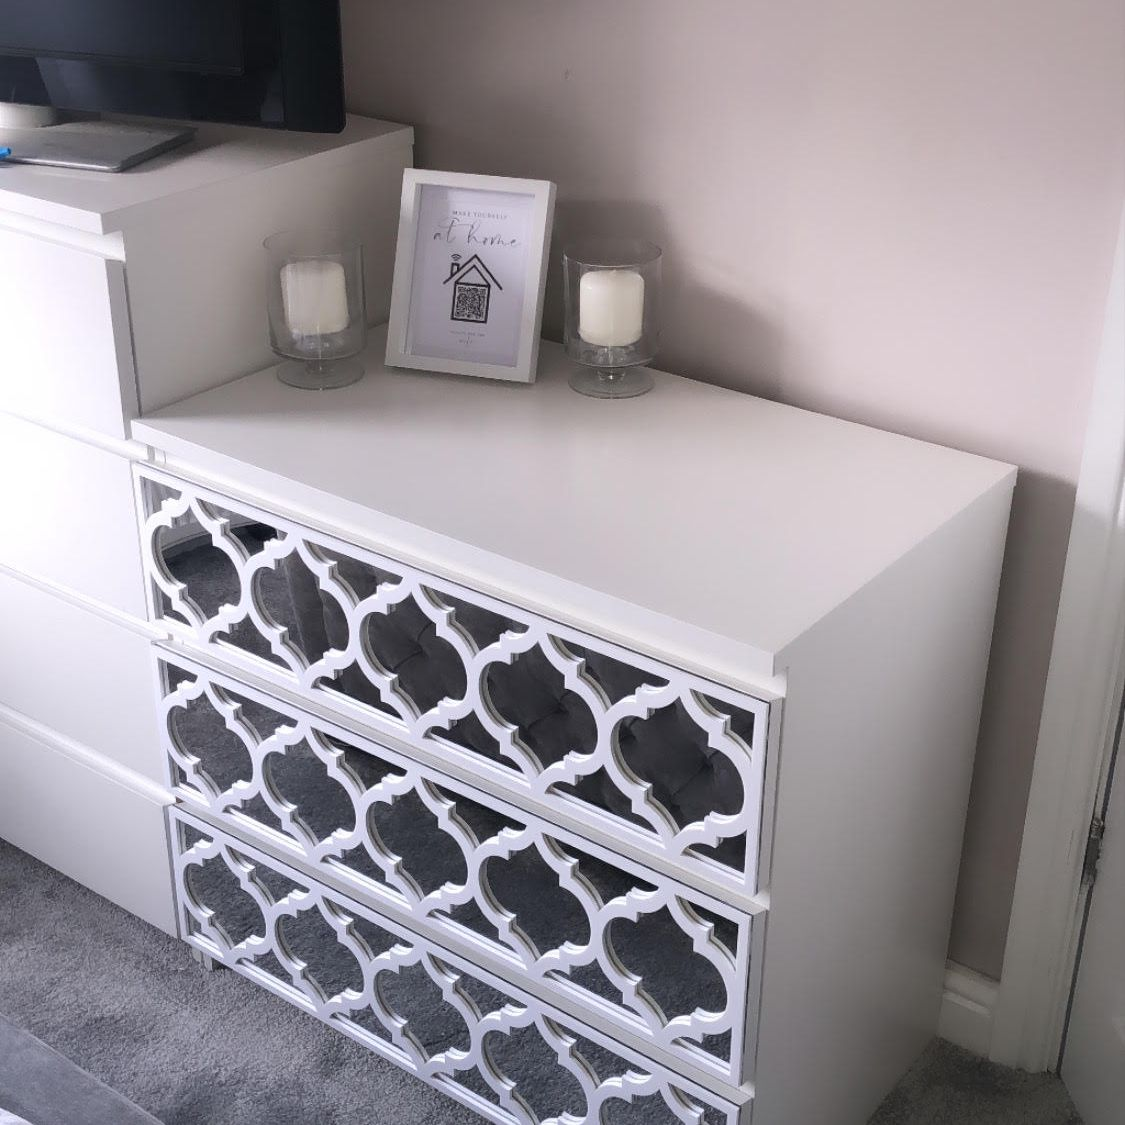 IKEA malm dresser decorated with mirrored trellises